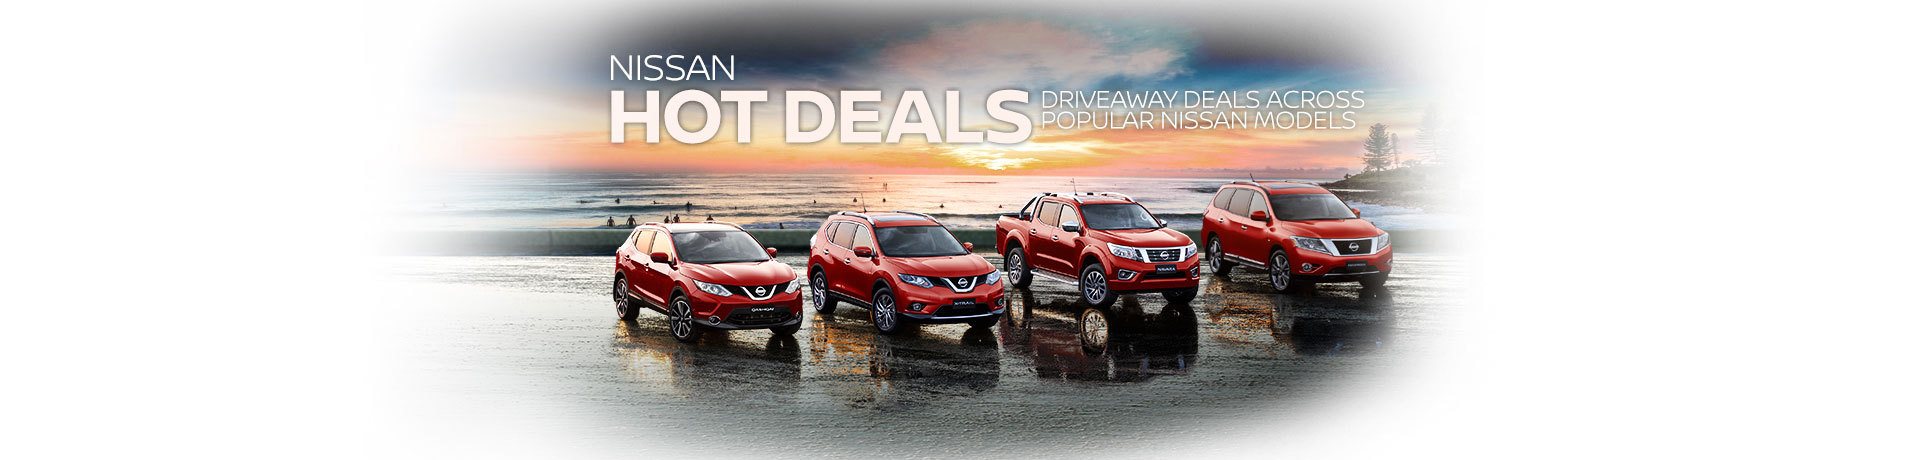 Nissan National Offer - Hot Deals